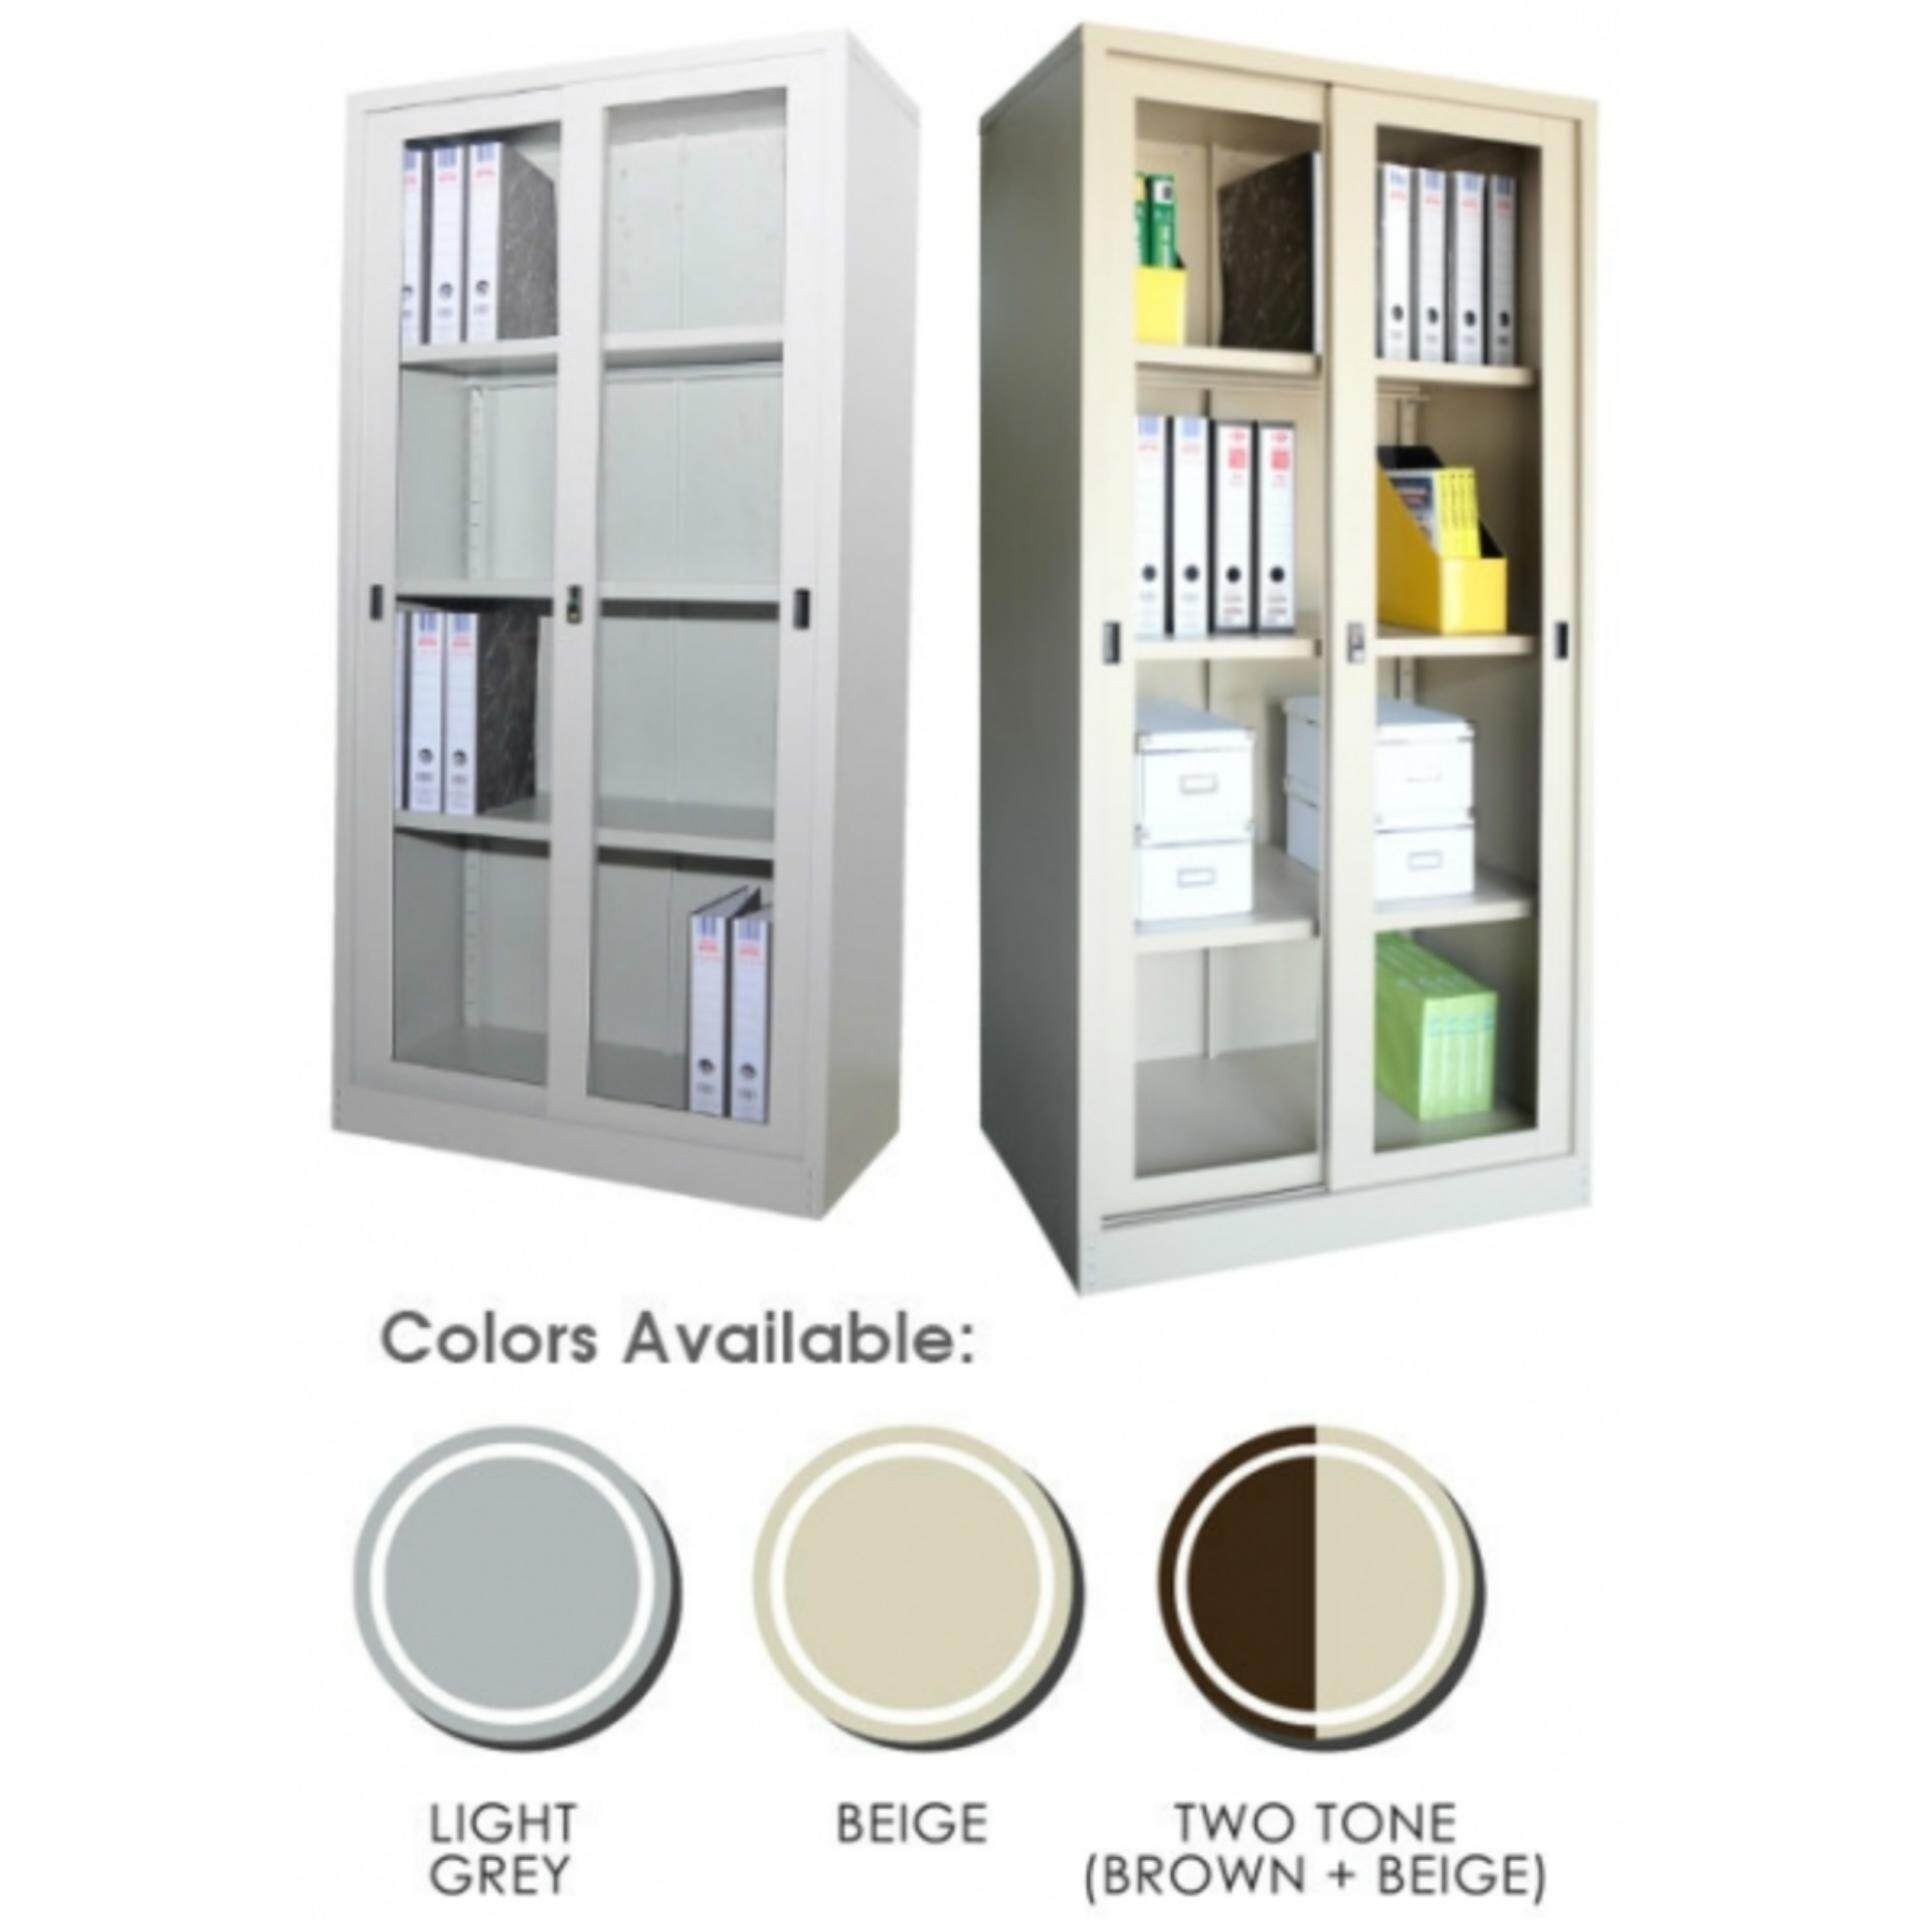 Ready-Fixed Deco Home Office Durable Glass Sliding-DoorStorage Cabinet Filing Cupboard Metal Documents Locker L915MM X W457MM X H1828MM Pre-Order 2 Week